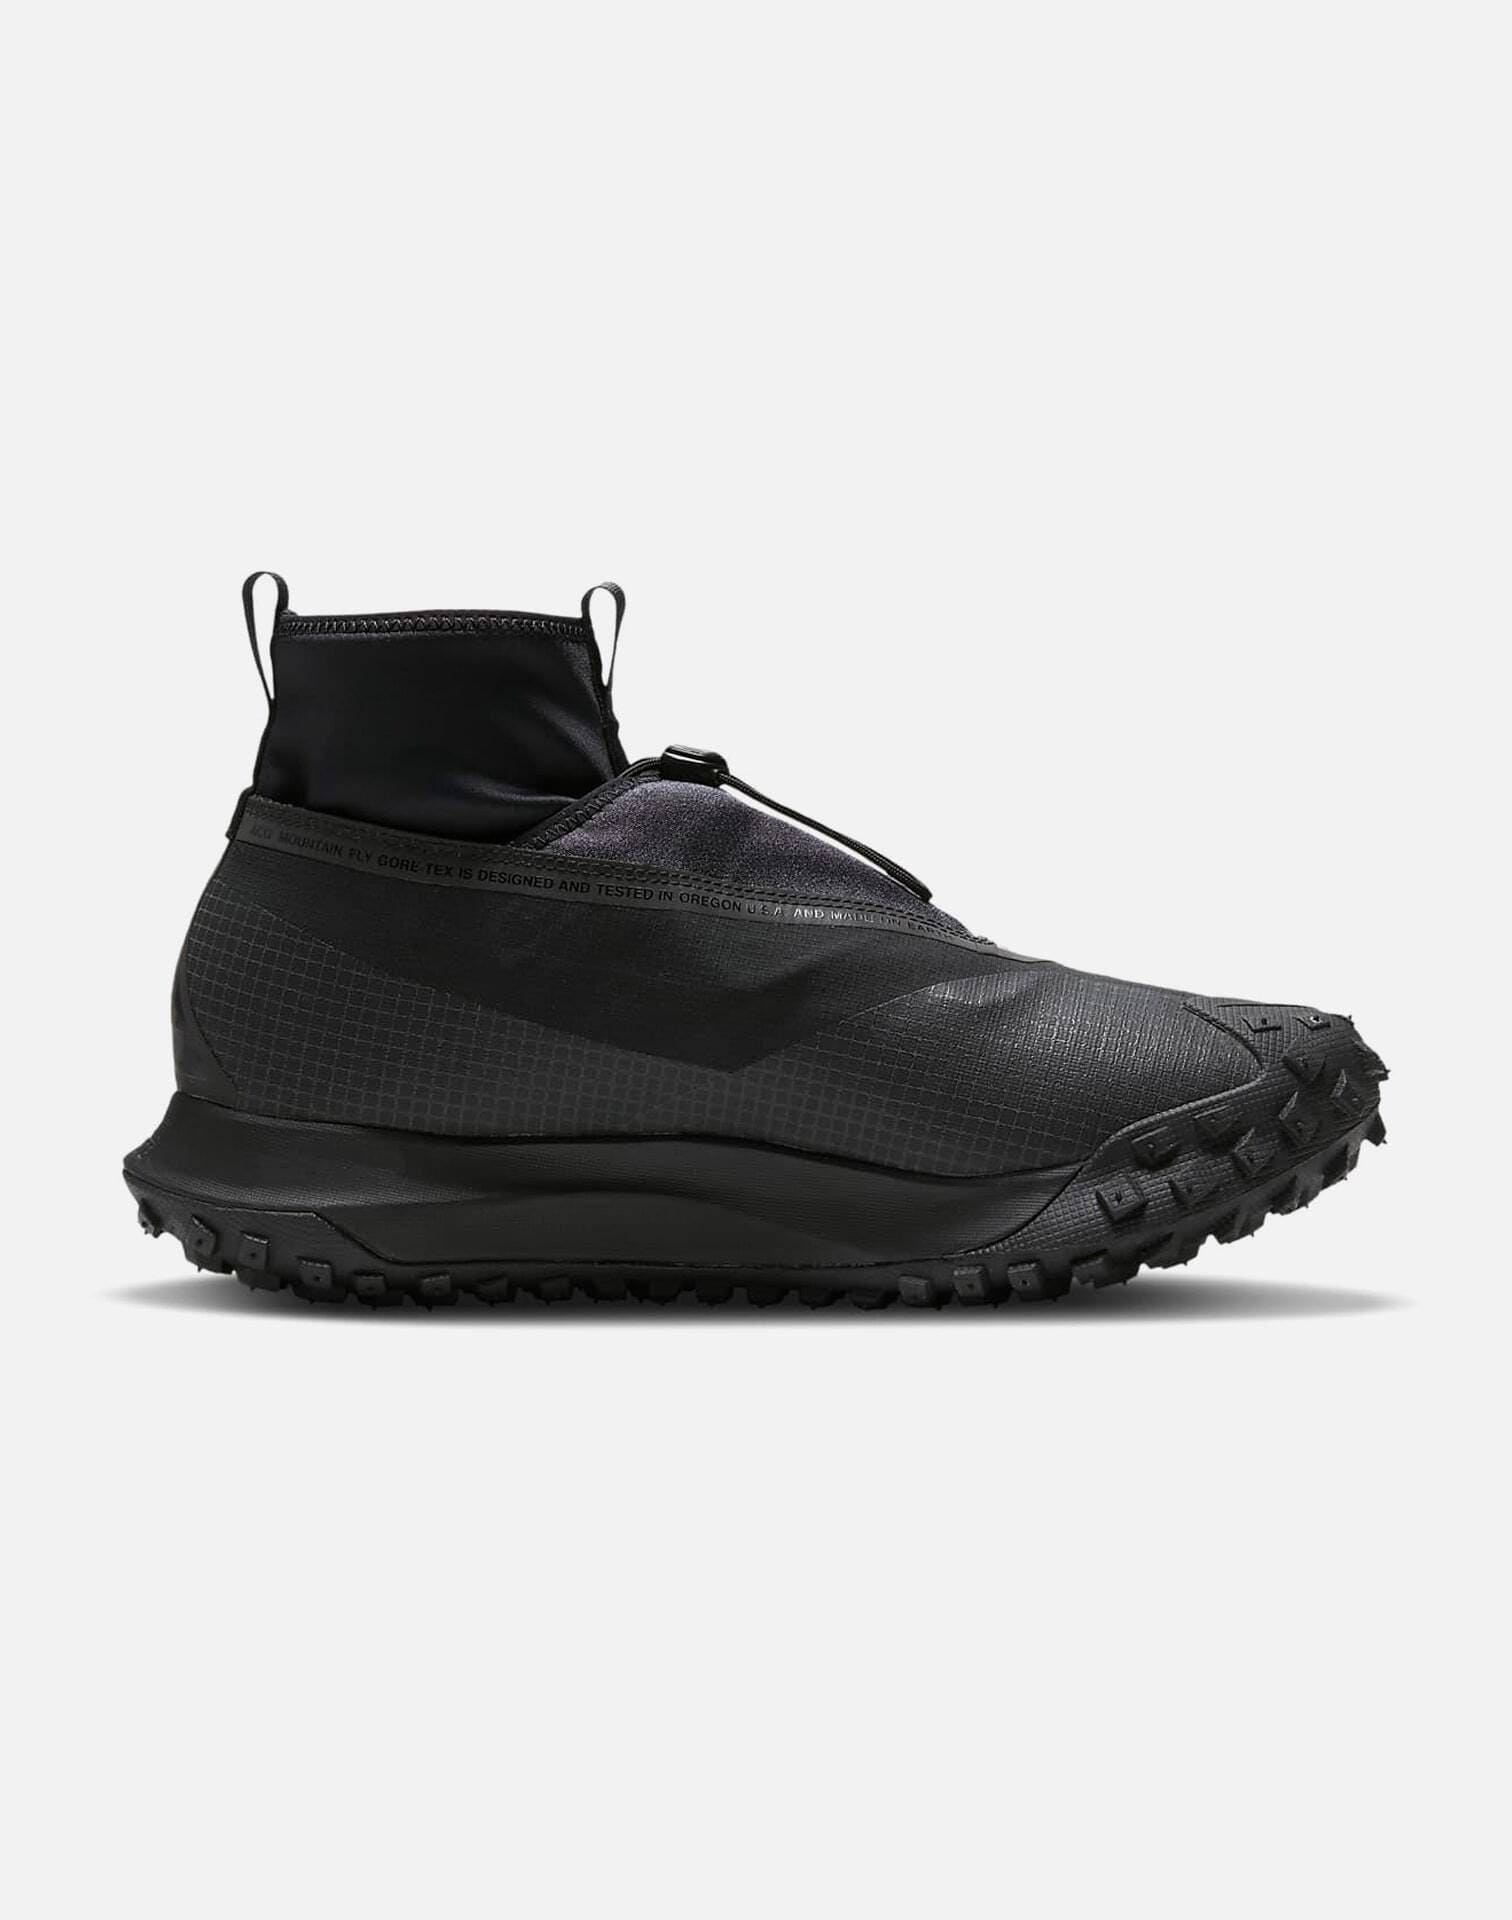 Nike ACG GORE-TEX MOUNTAIN FLY